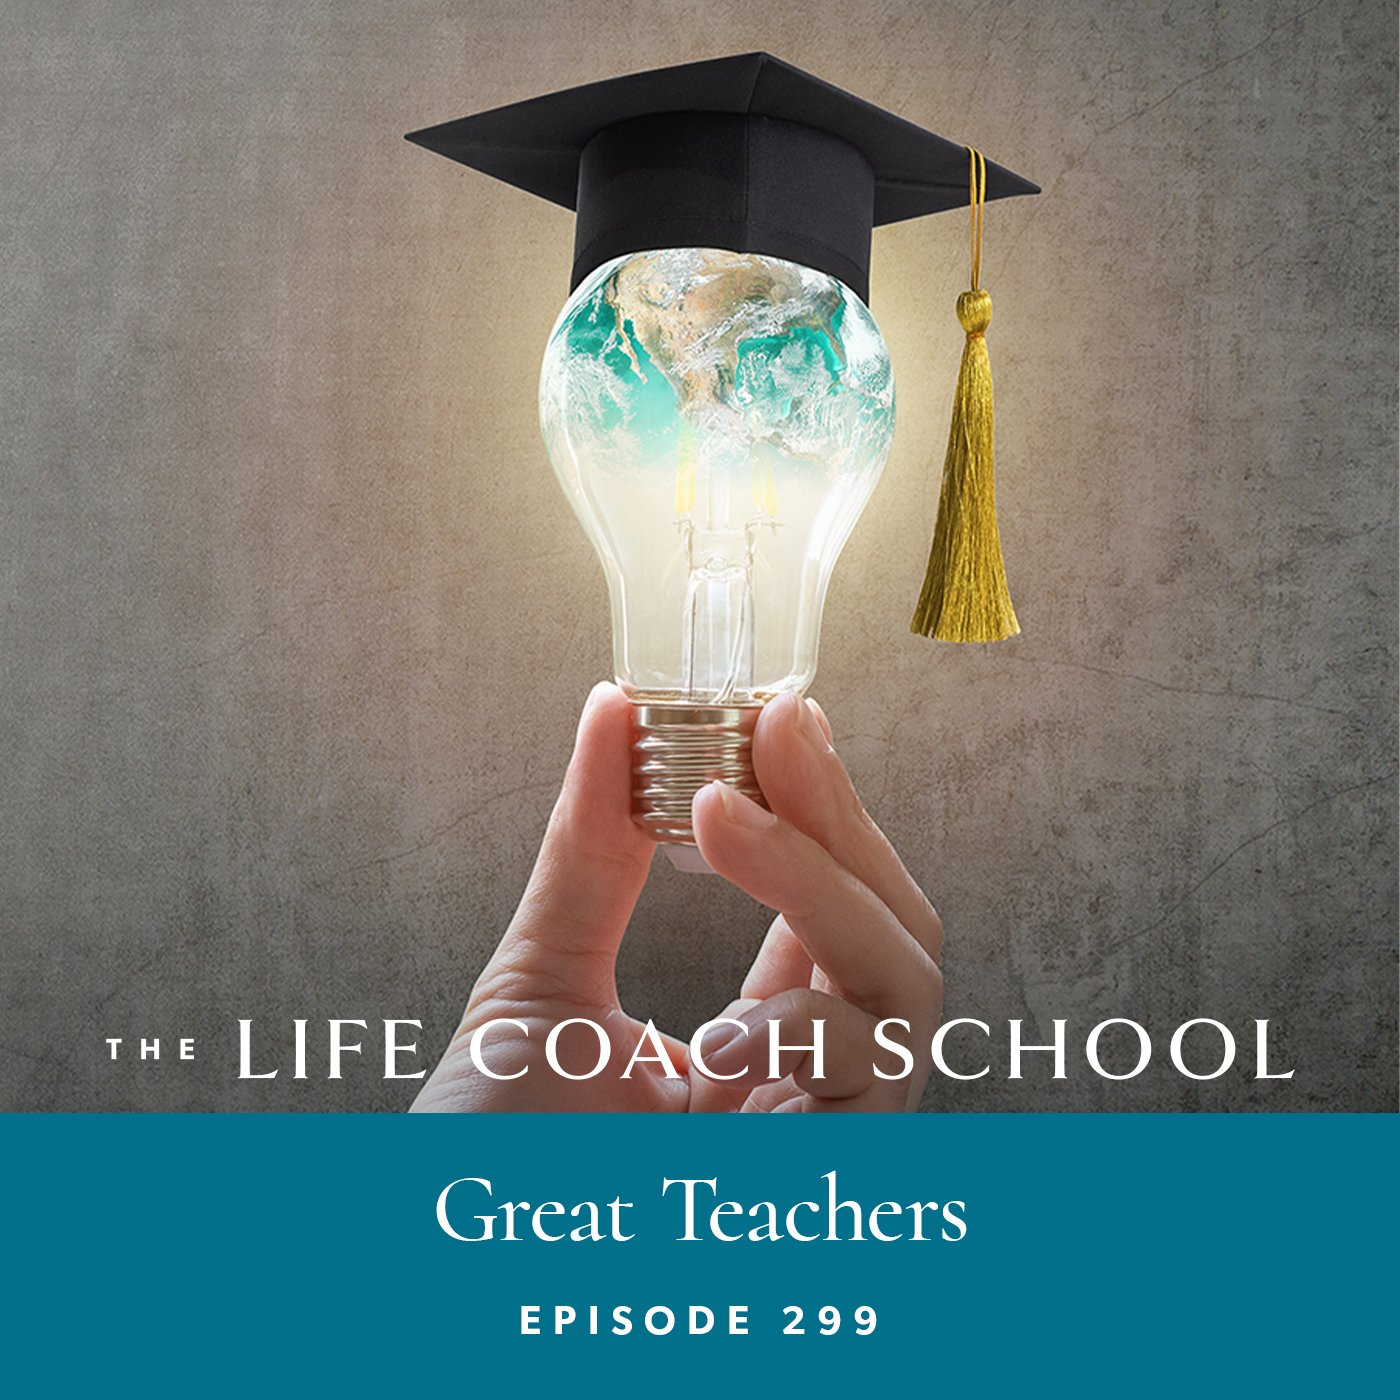 The Life Coach School Podcast with Brooke Castillo | Episode 299 | Great Teachers